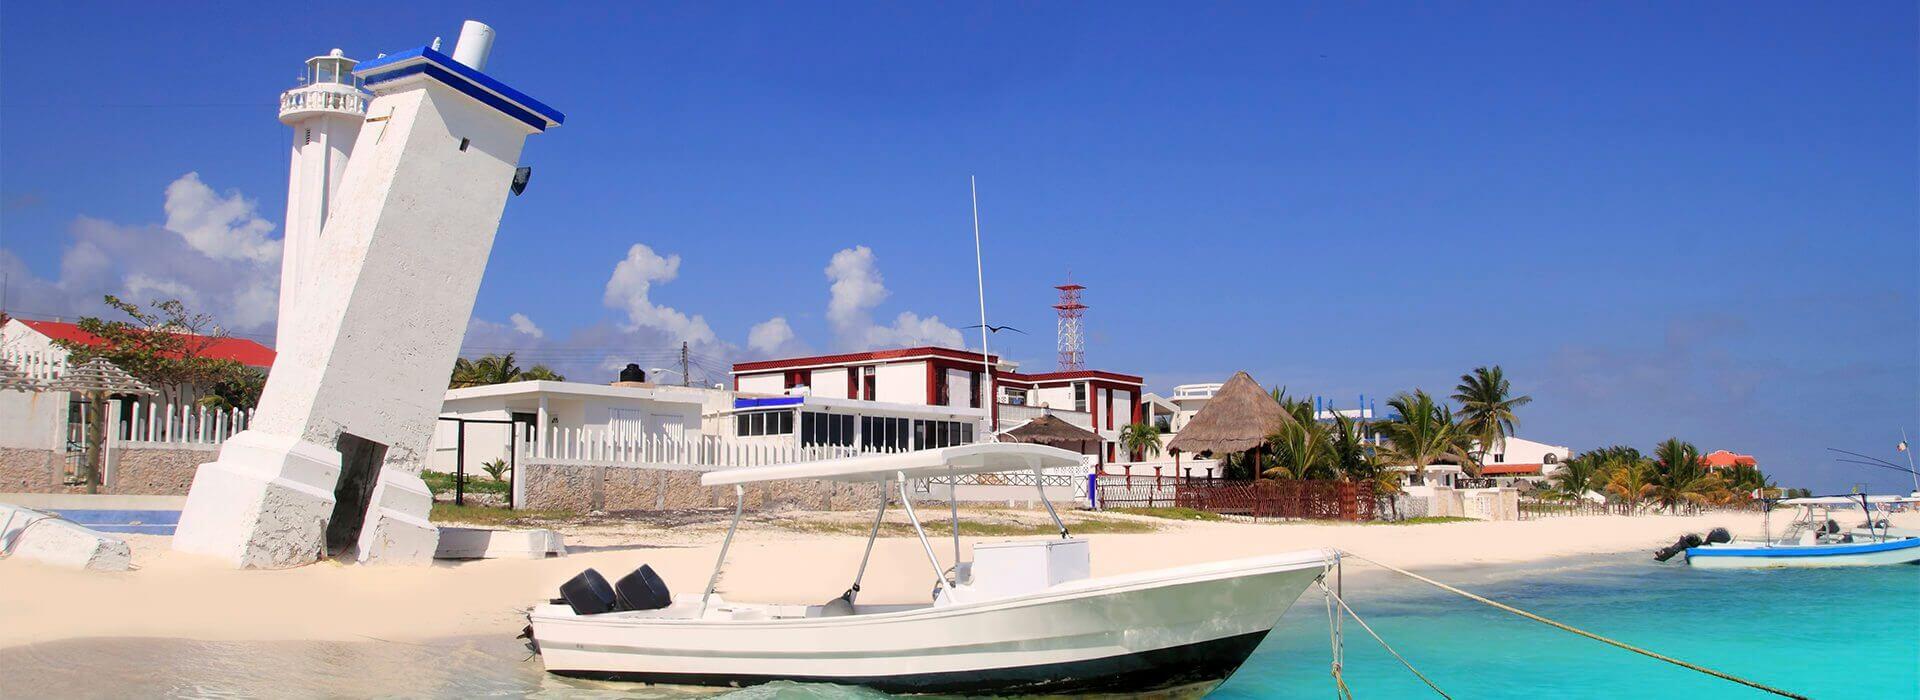 best family vacations in Puerto Morelos